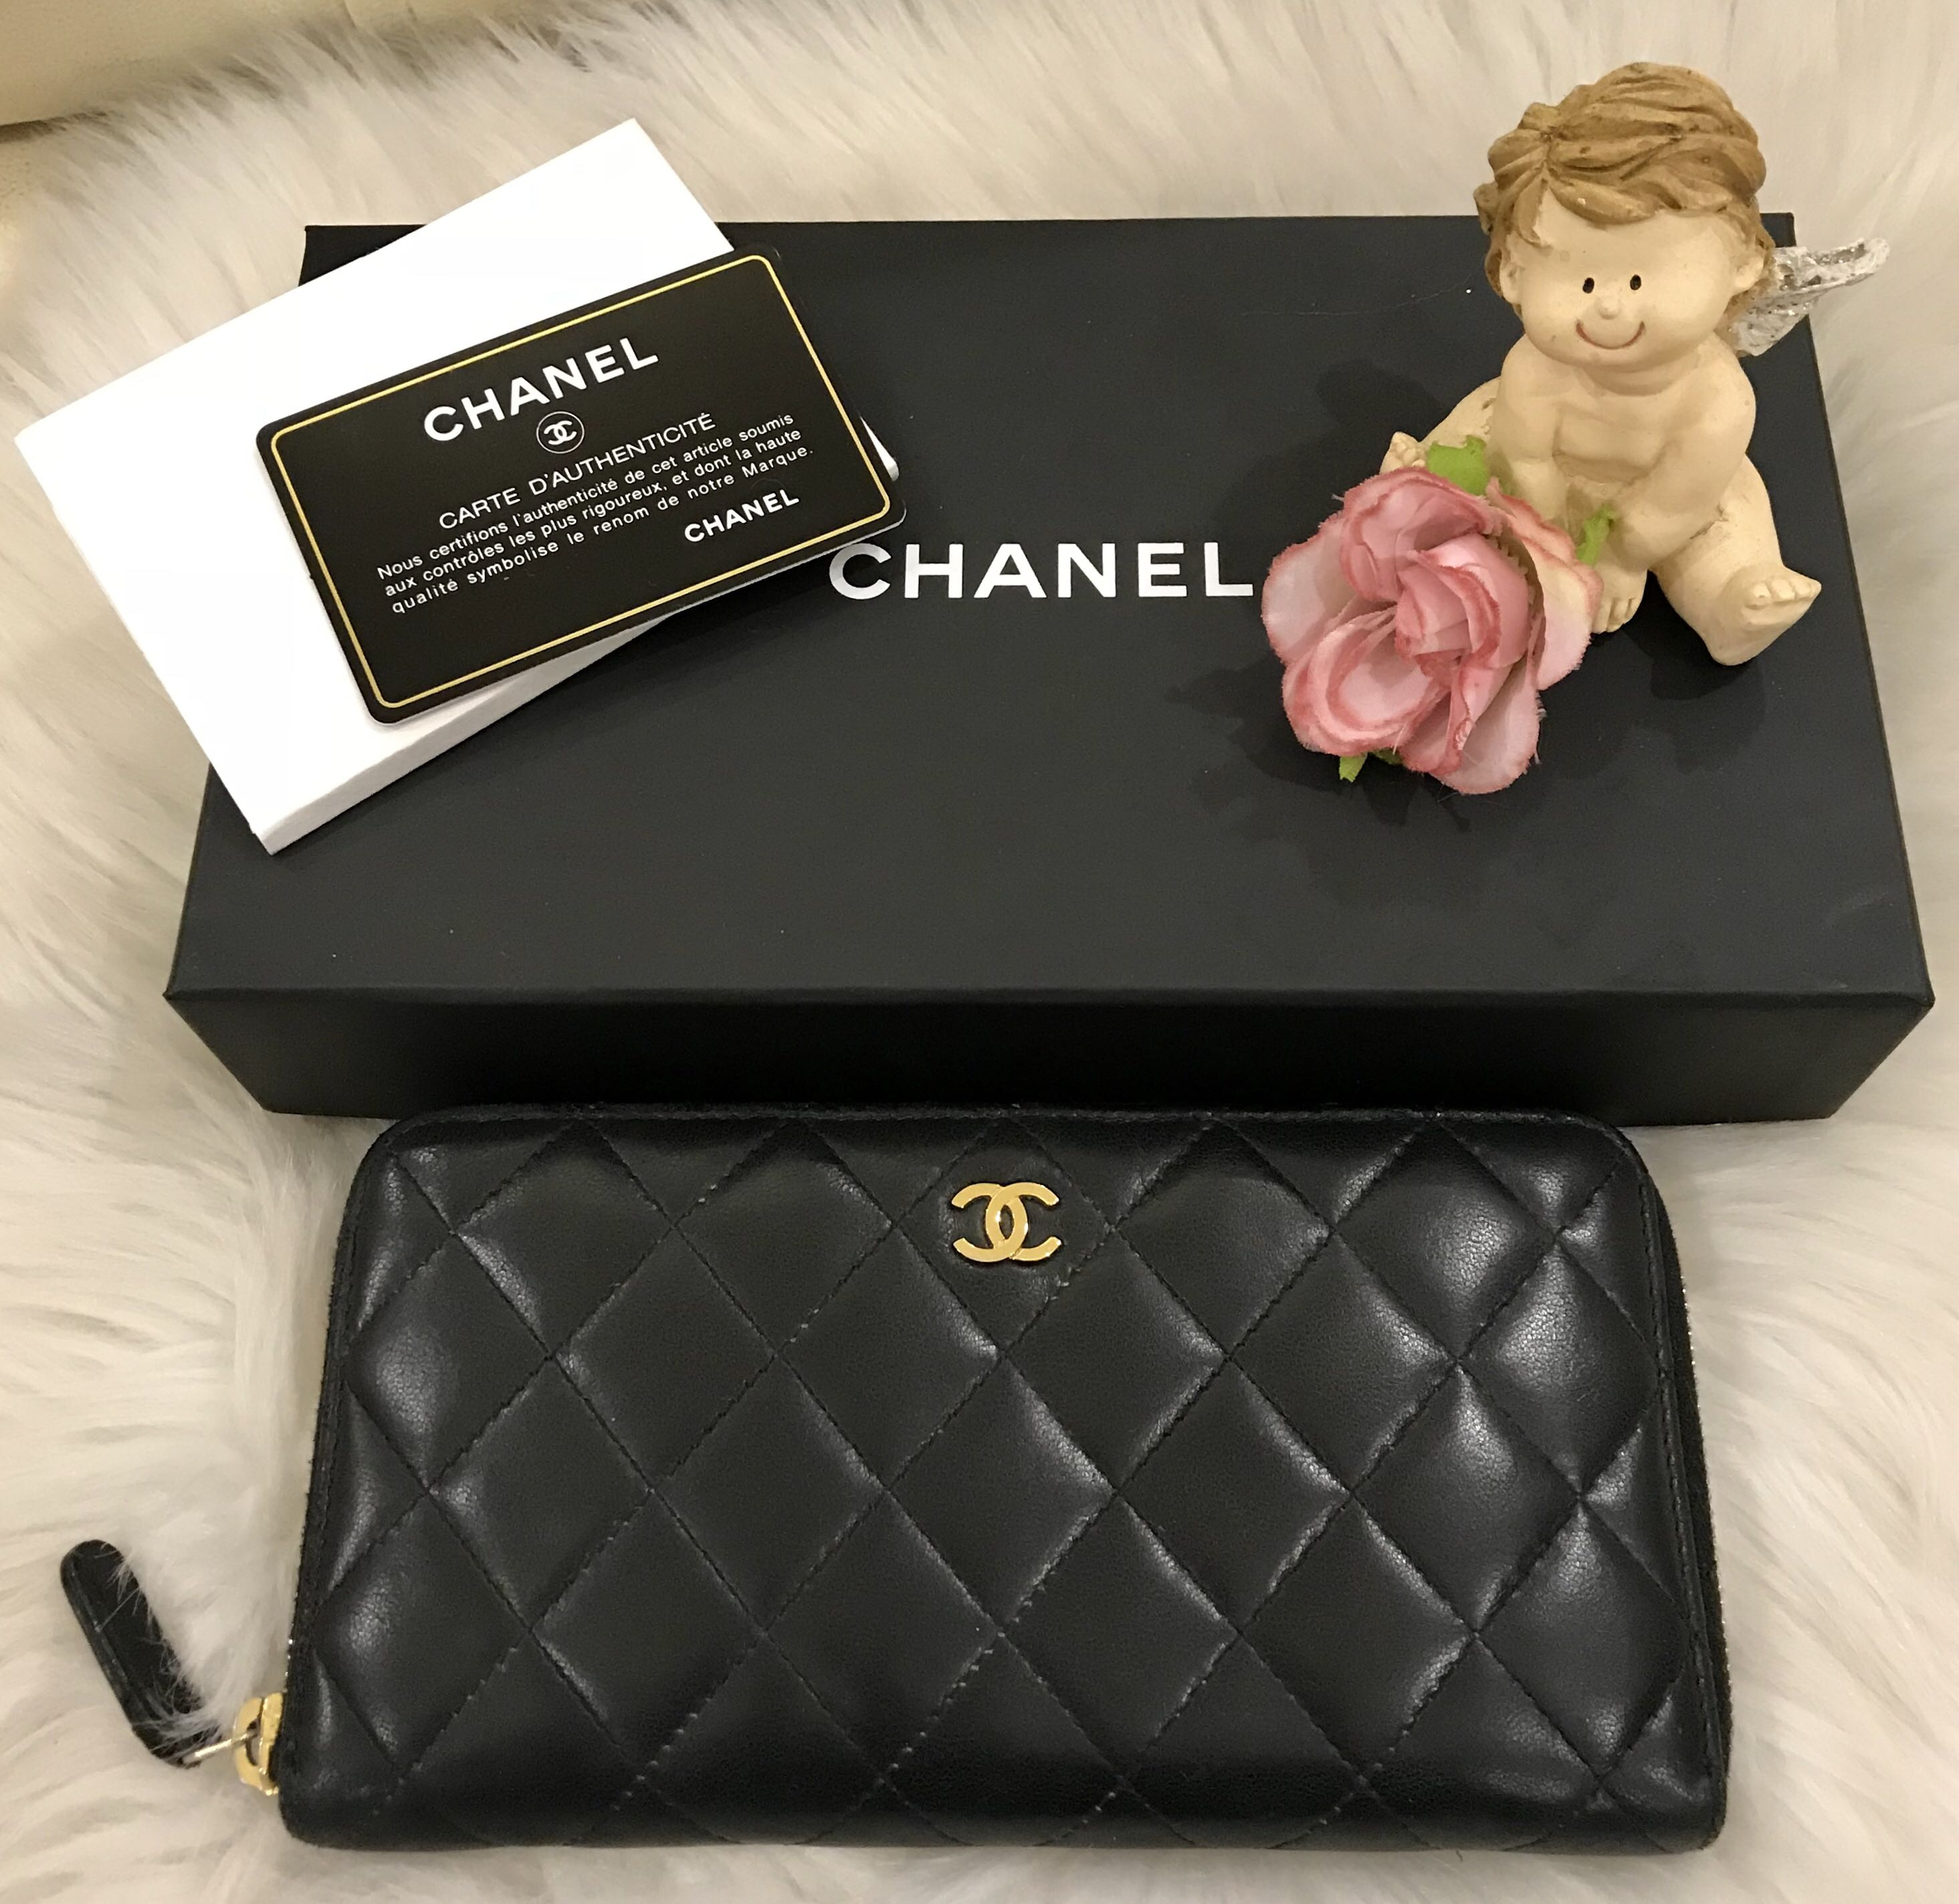 5288907f63b5 Authentic CHANEL Black Quilted Lambskin Leather Zip-Around Long Wallet,  Luxury, Bags & Wallets, Wallets on Carousell